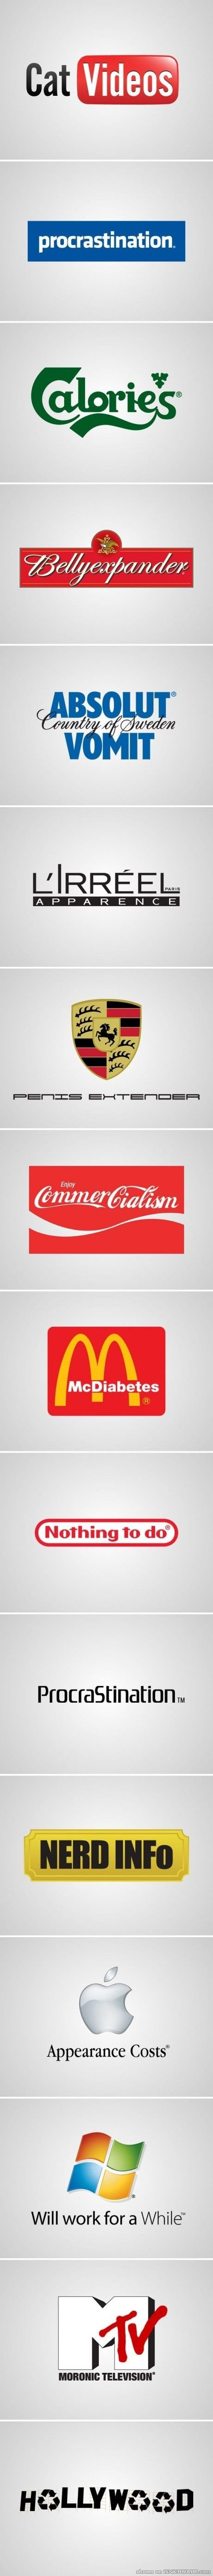 "true meaning of logos. dunno if repost, i havent seen it here deedz to isnichwahr.de!. can lla Nothing to def Procrastination,» Appearance Costs"" Will work for"